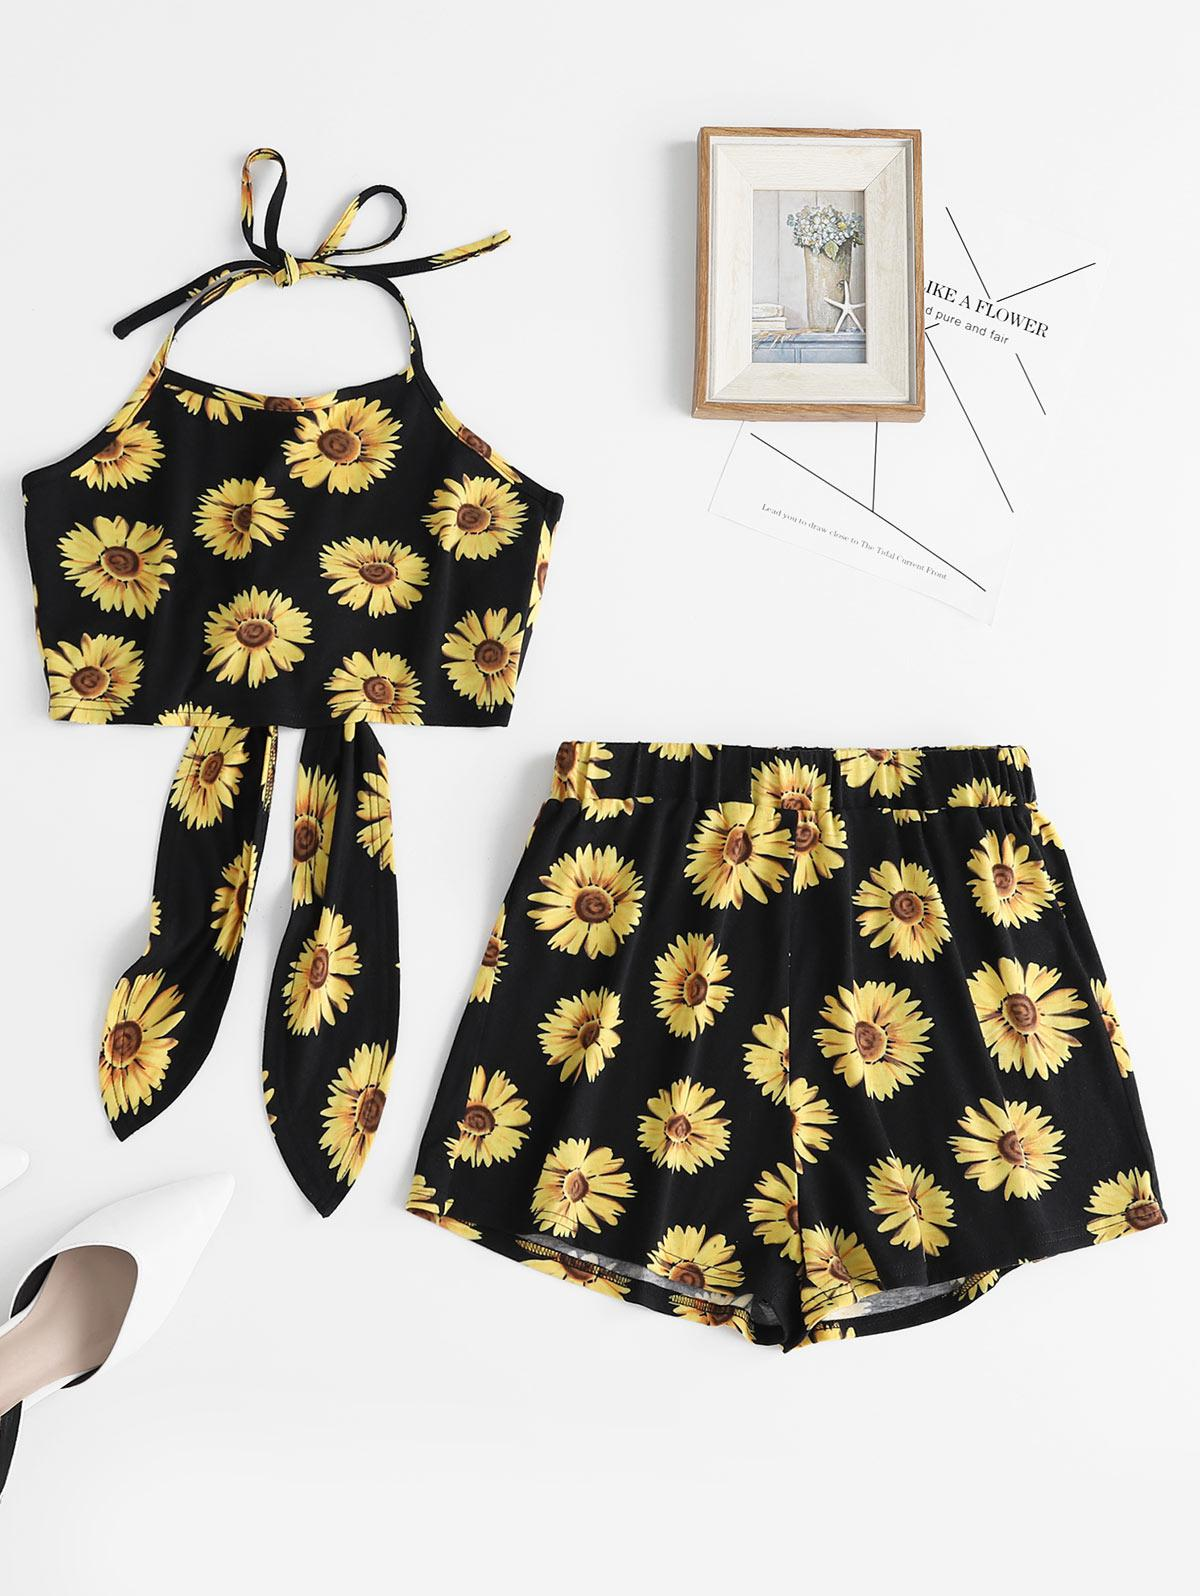 ZAFUL Flower Print Halter Crop Top and Shorts Set, Black